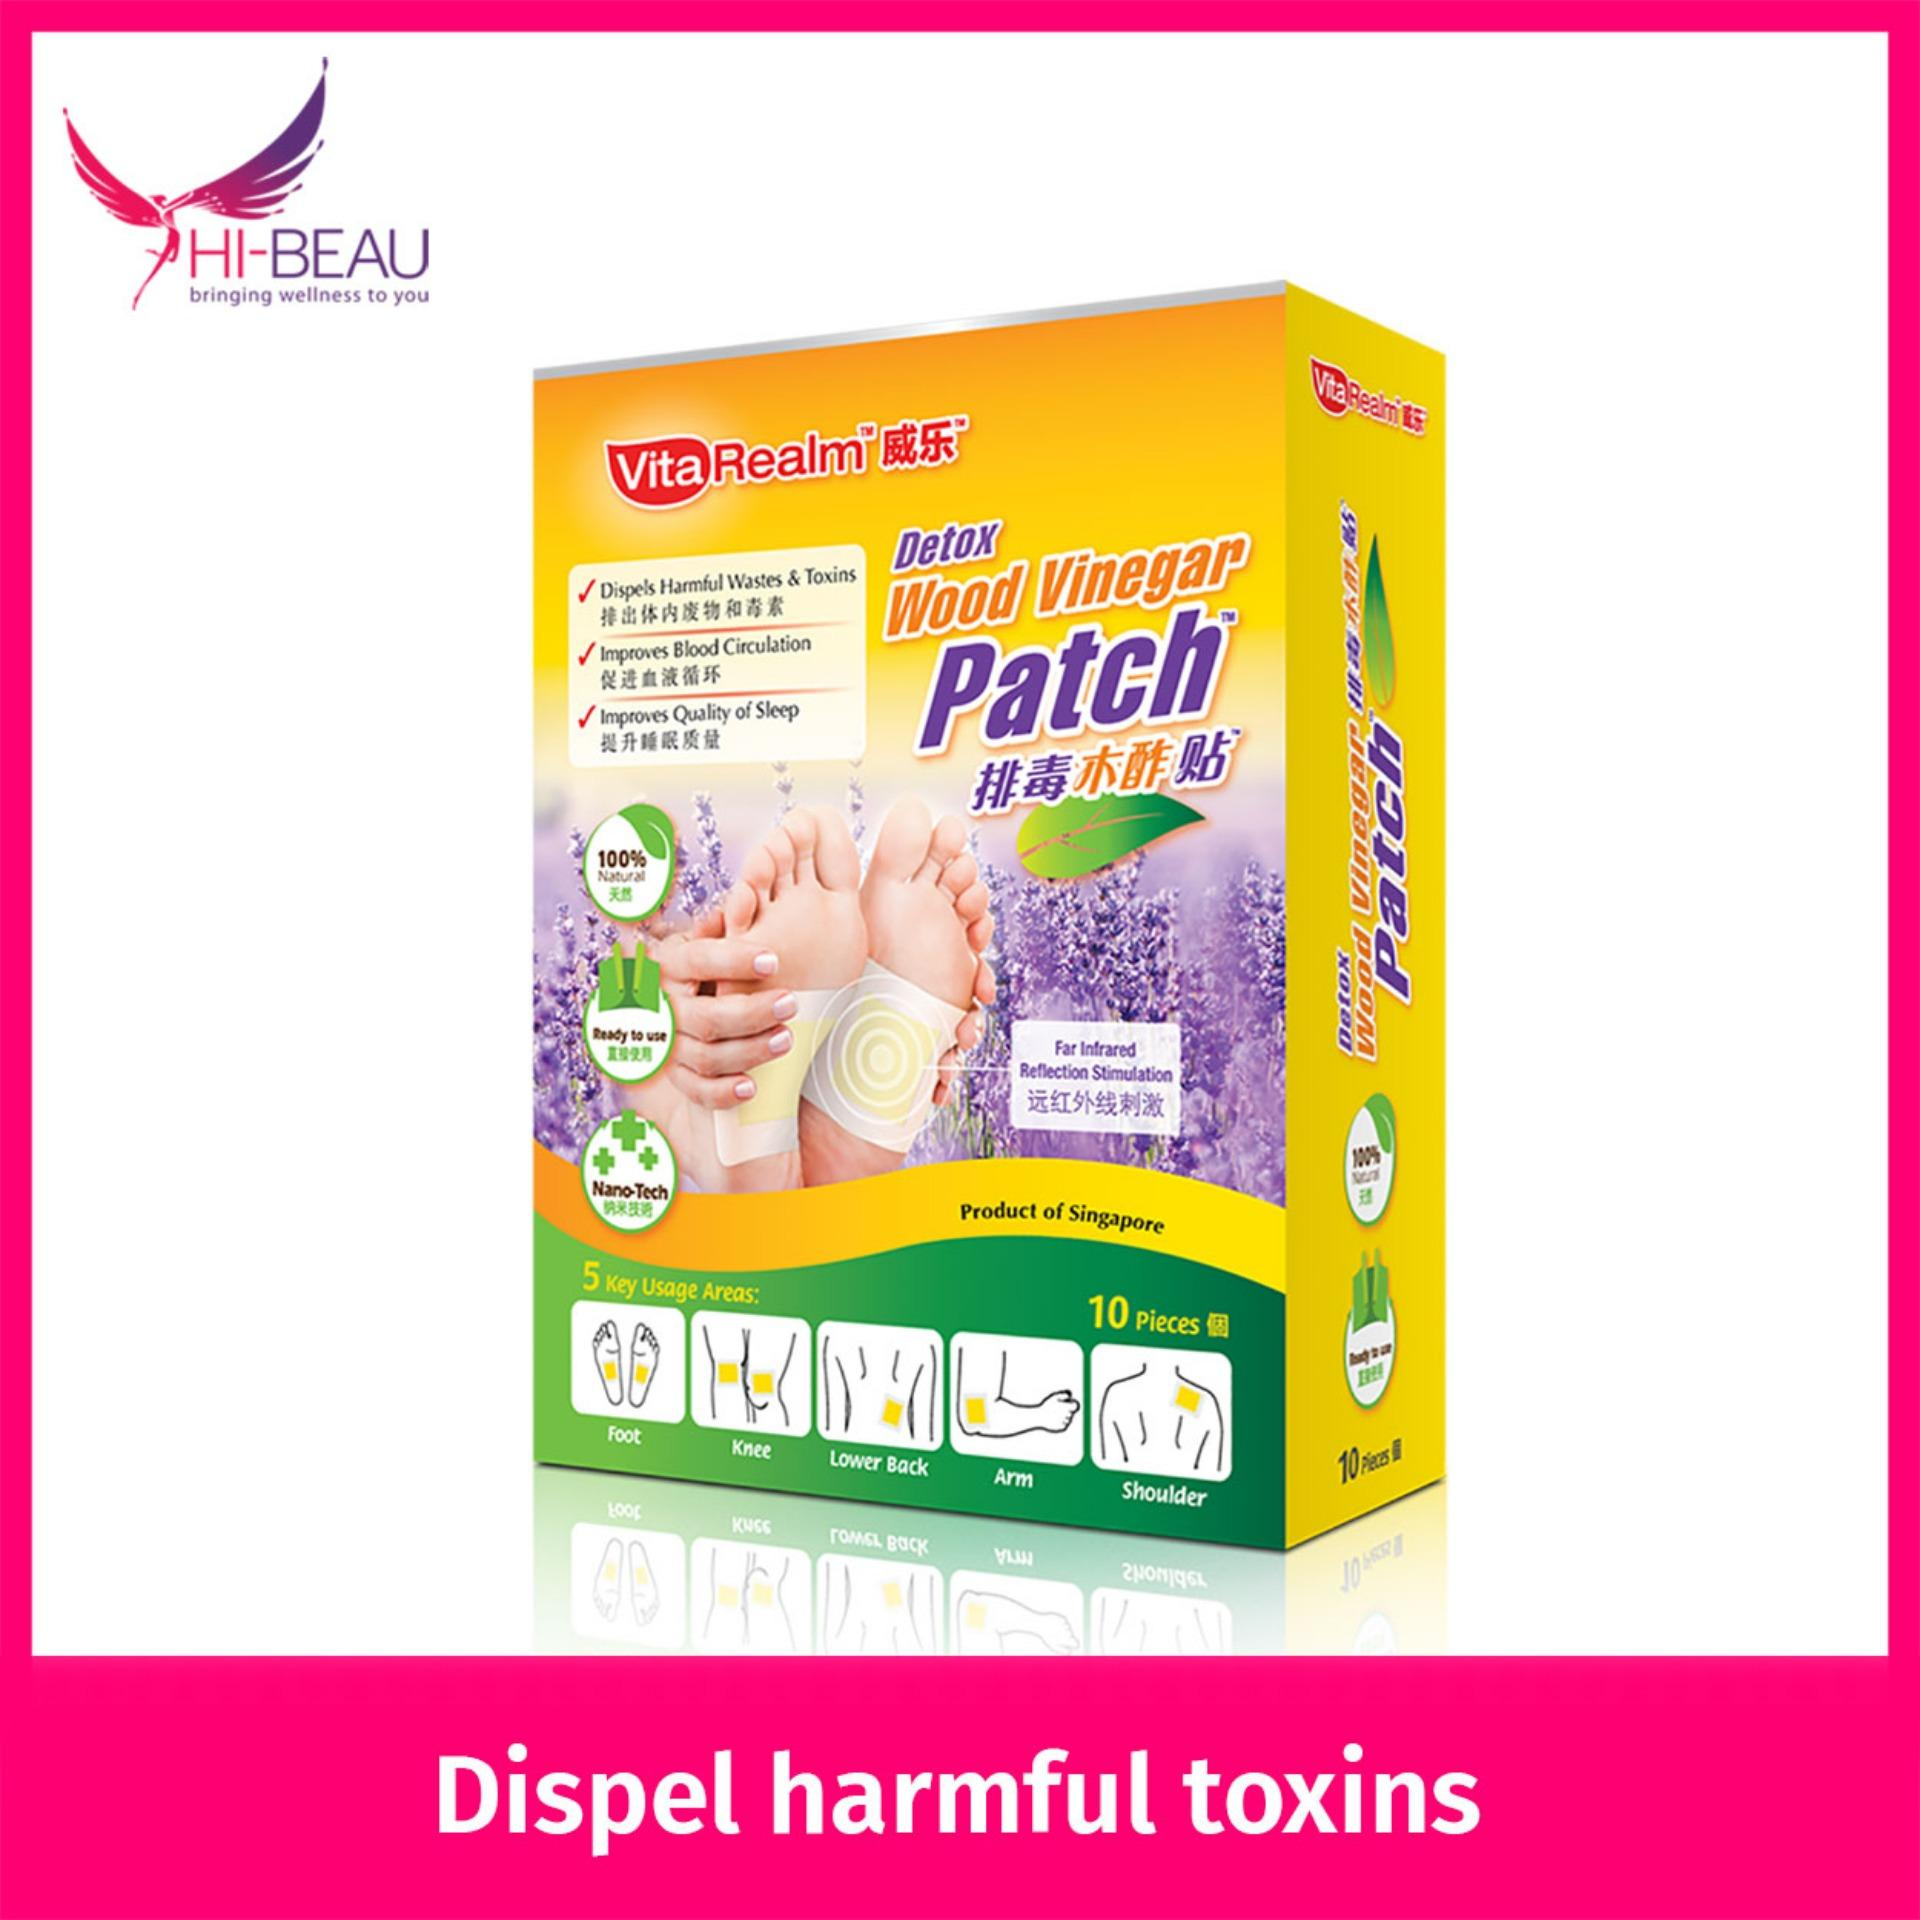 Review Vitarealm Detox Wood Vinegar Patch Vitarealm On Singapore